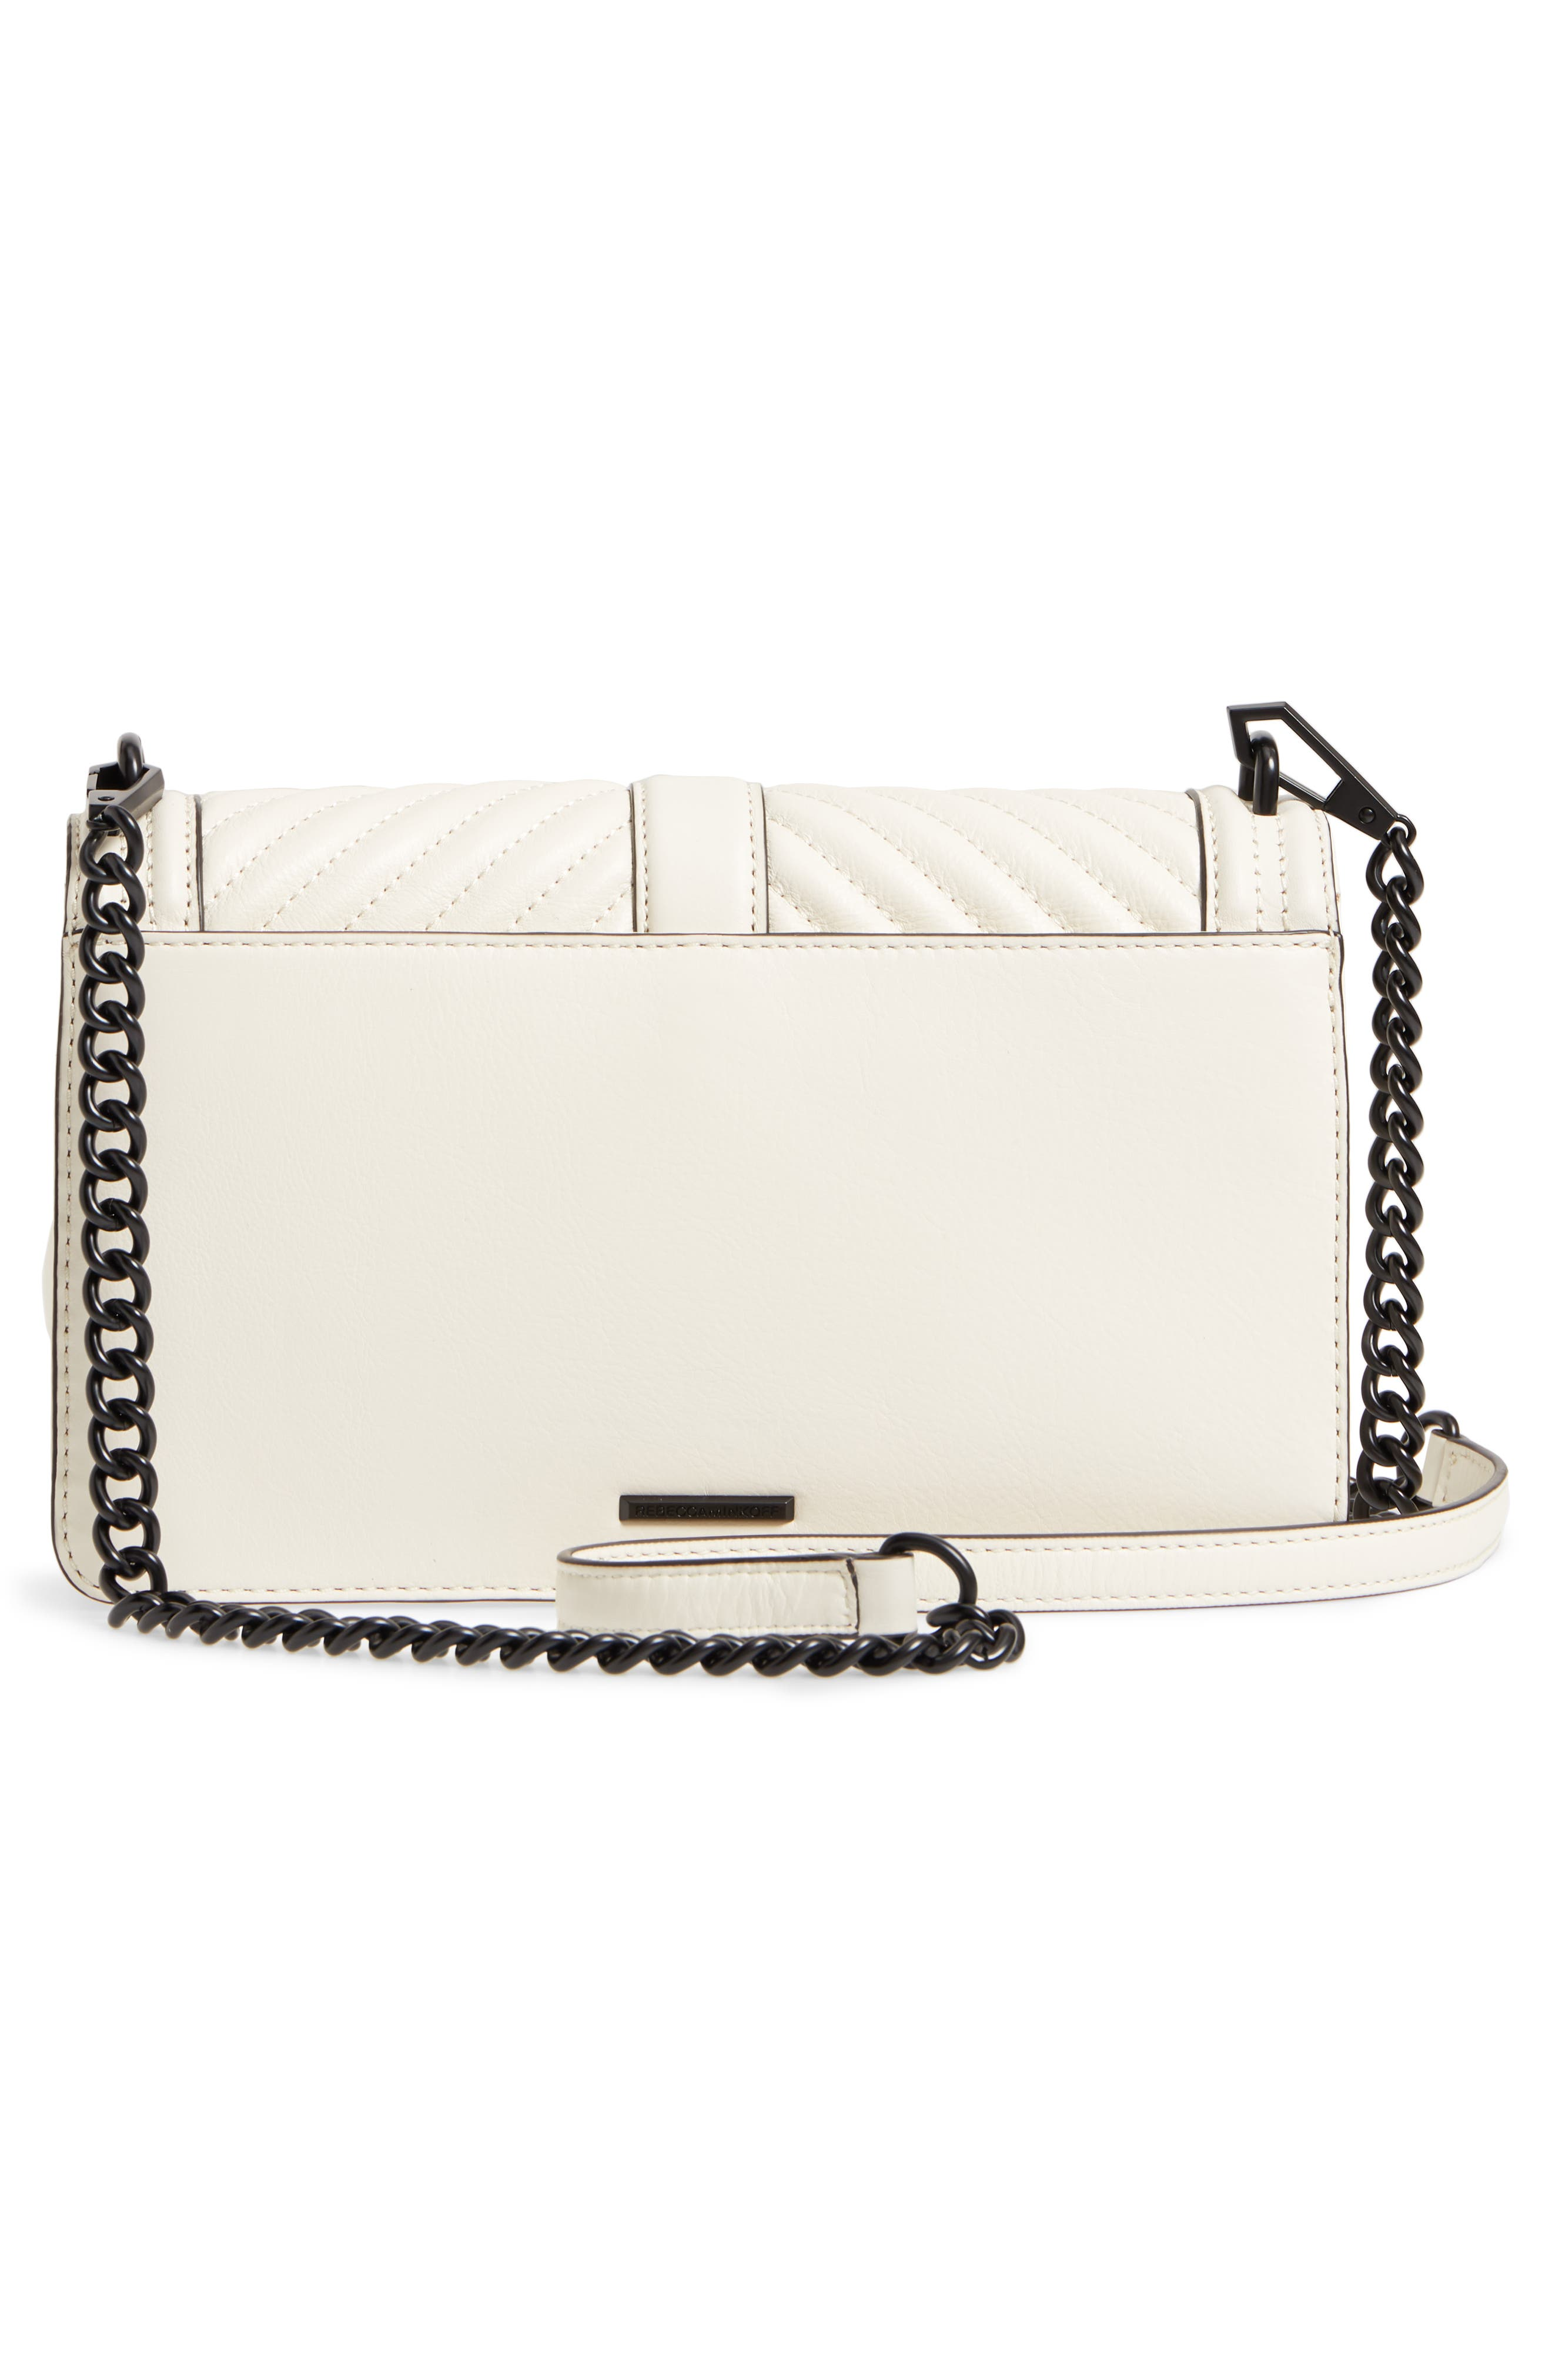 'Chevron Quilted Love' Crossbody Bag,                             Alternate thumbnail 3, color,                             Antique White